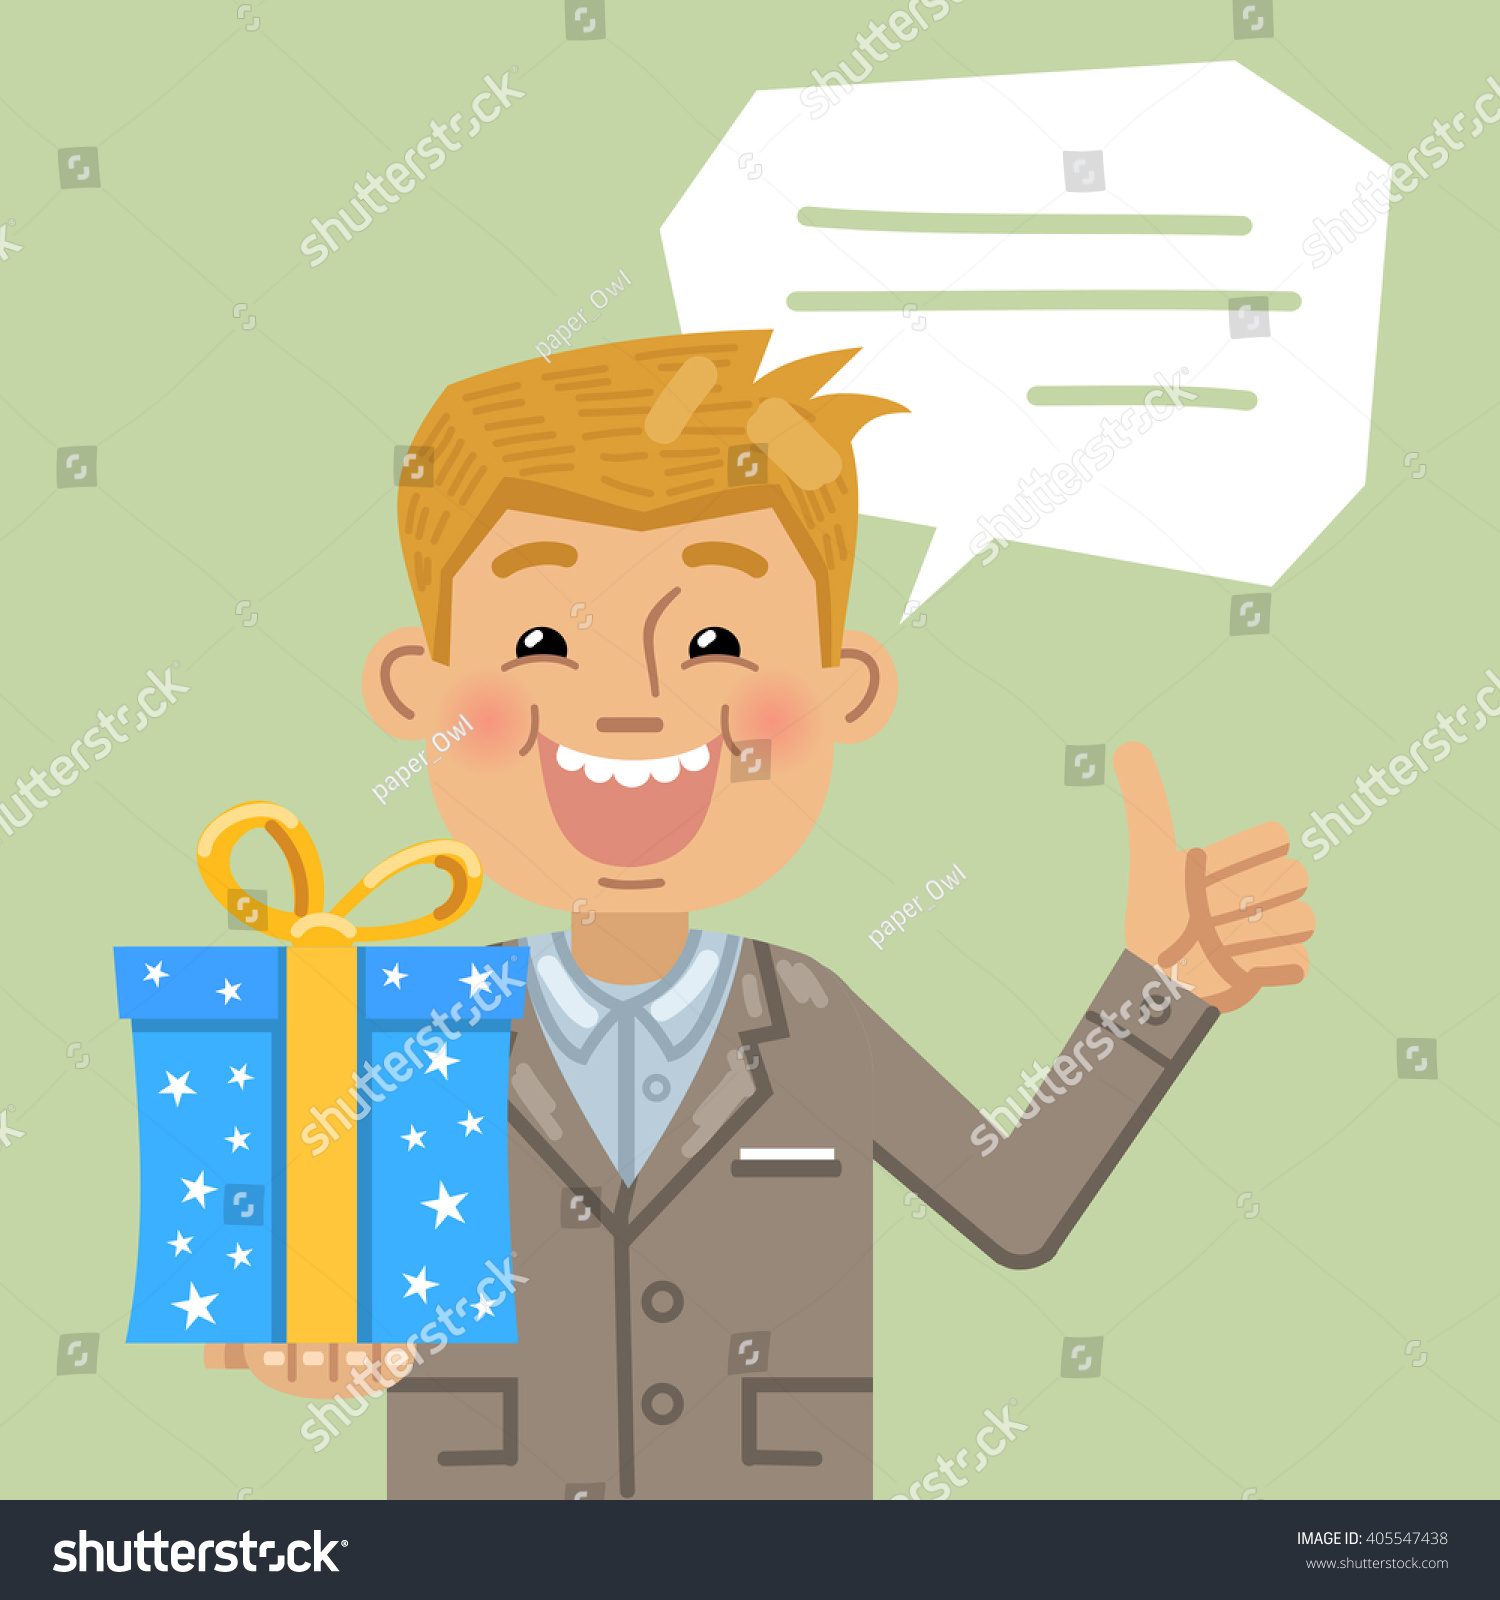 Illustration Of A Businessman With Gift Box Showing Thumb Up Gesture Birthday Party